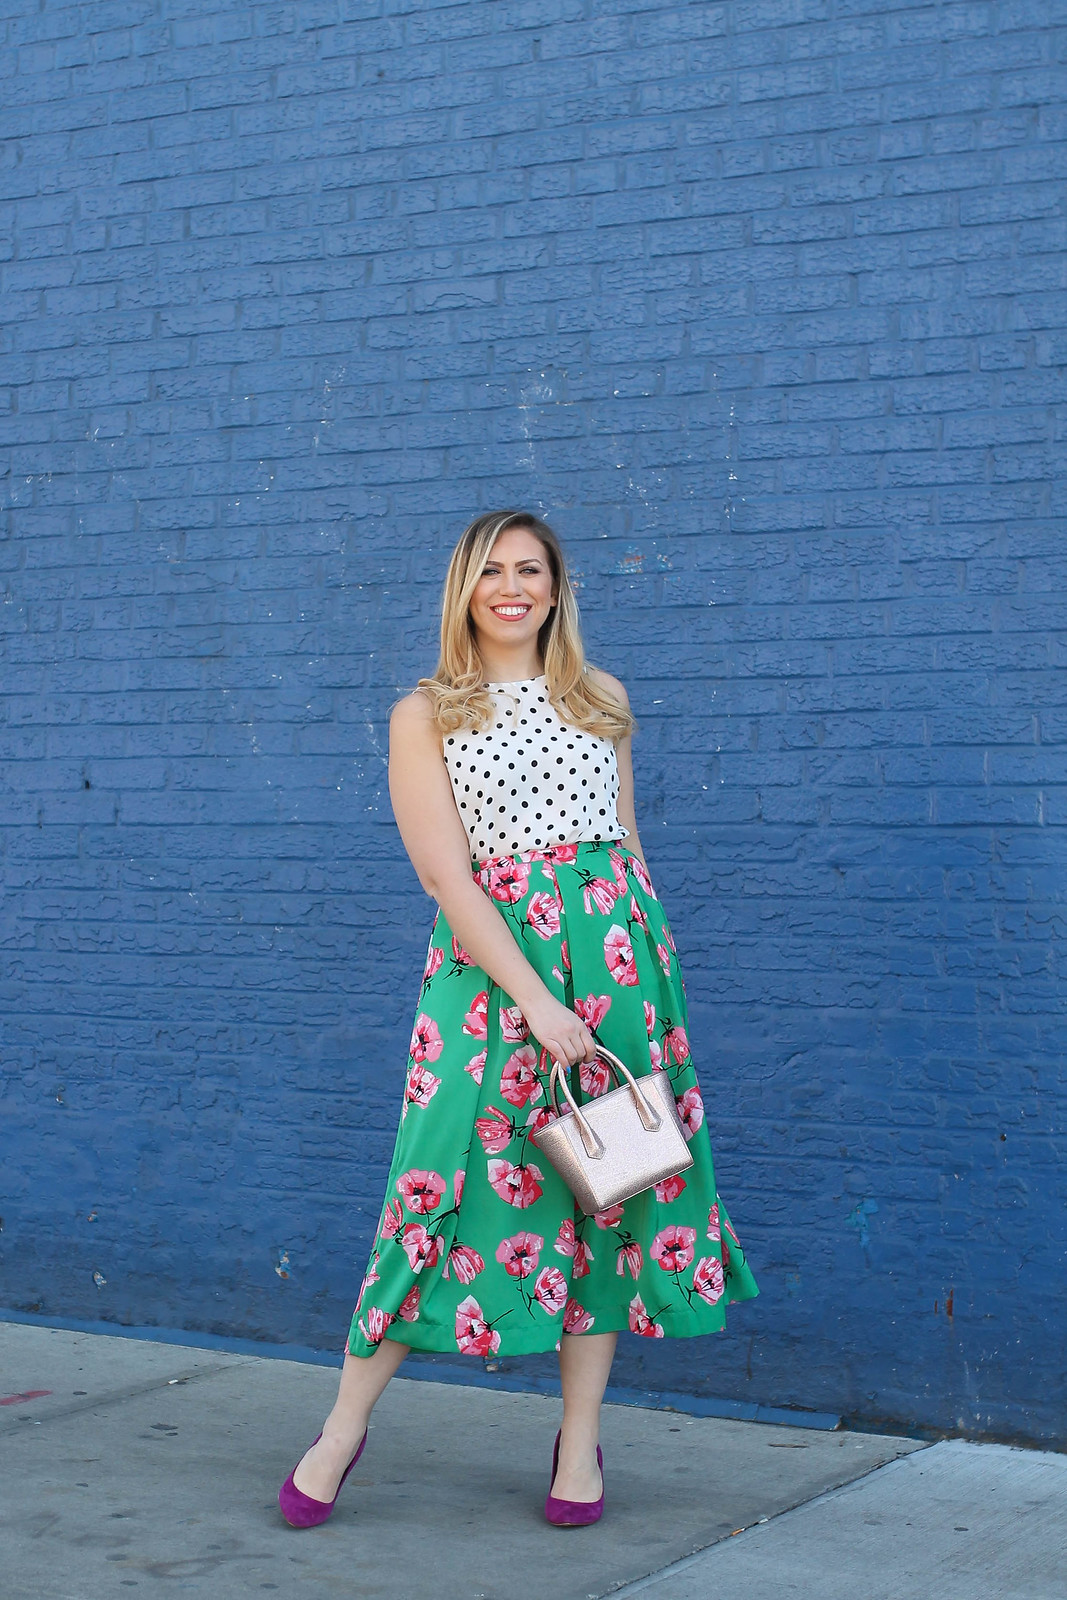 Who What Wear for Target Spring Outfit Pattern Mixing Polka Dots Floral Print Jackie Giardina